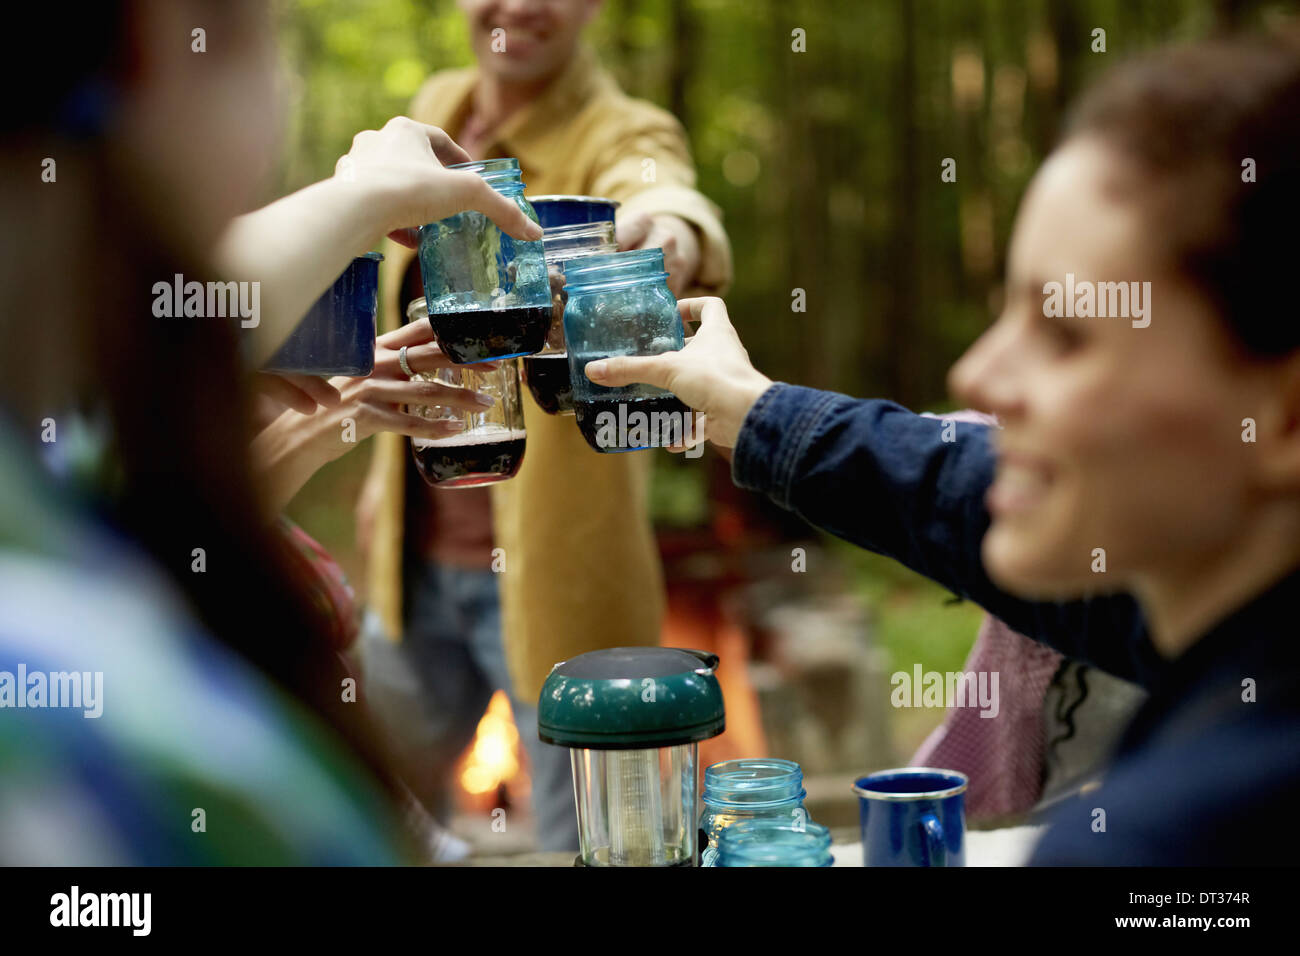 A campsite clearing in the woods People seated - Stock Image